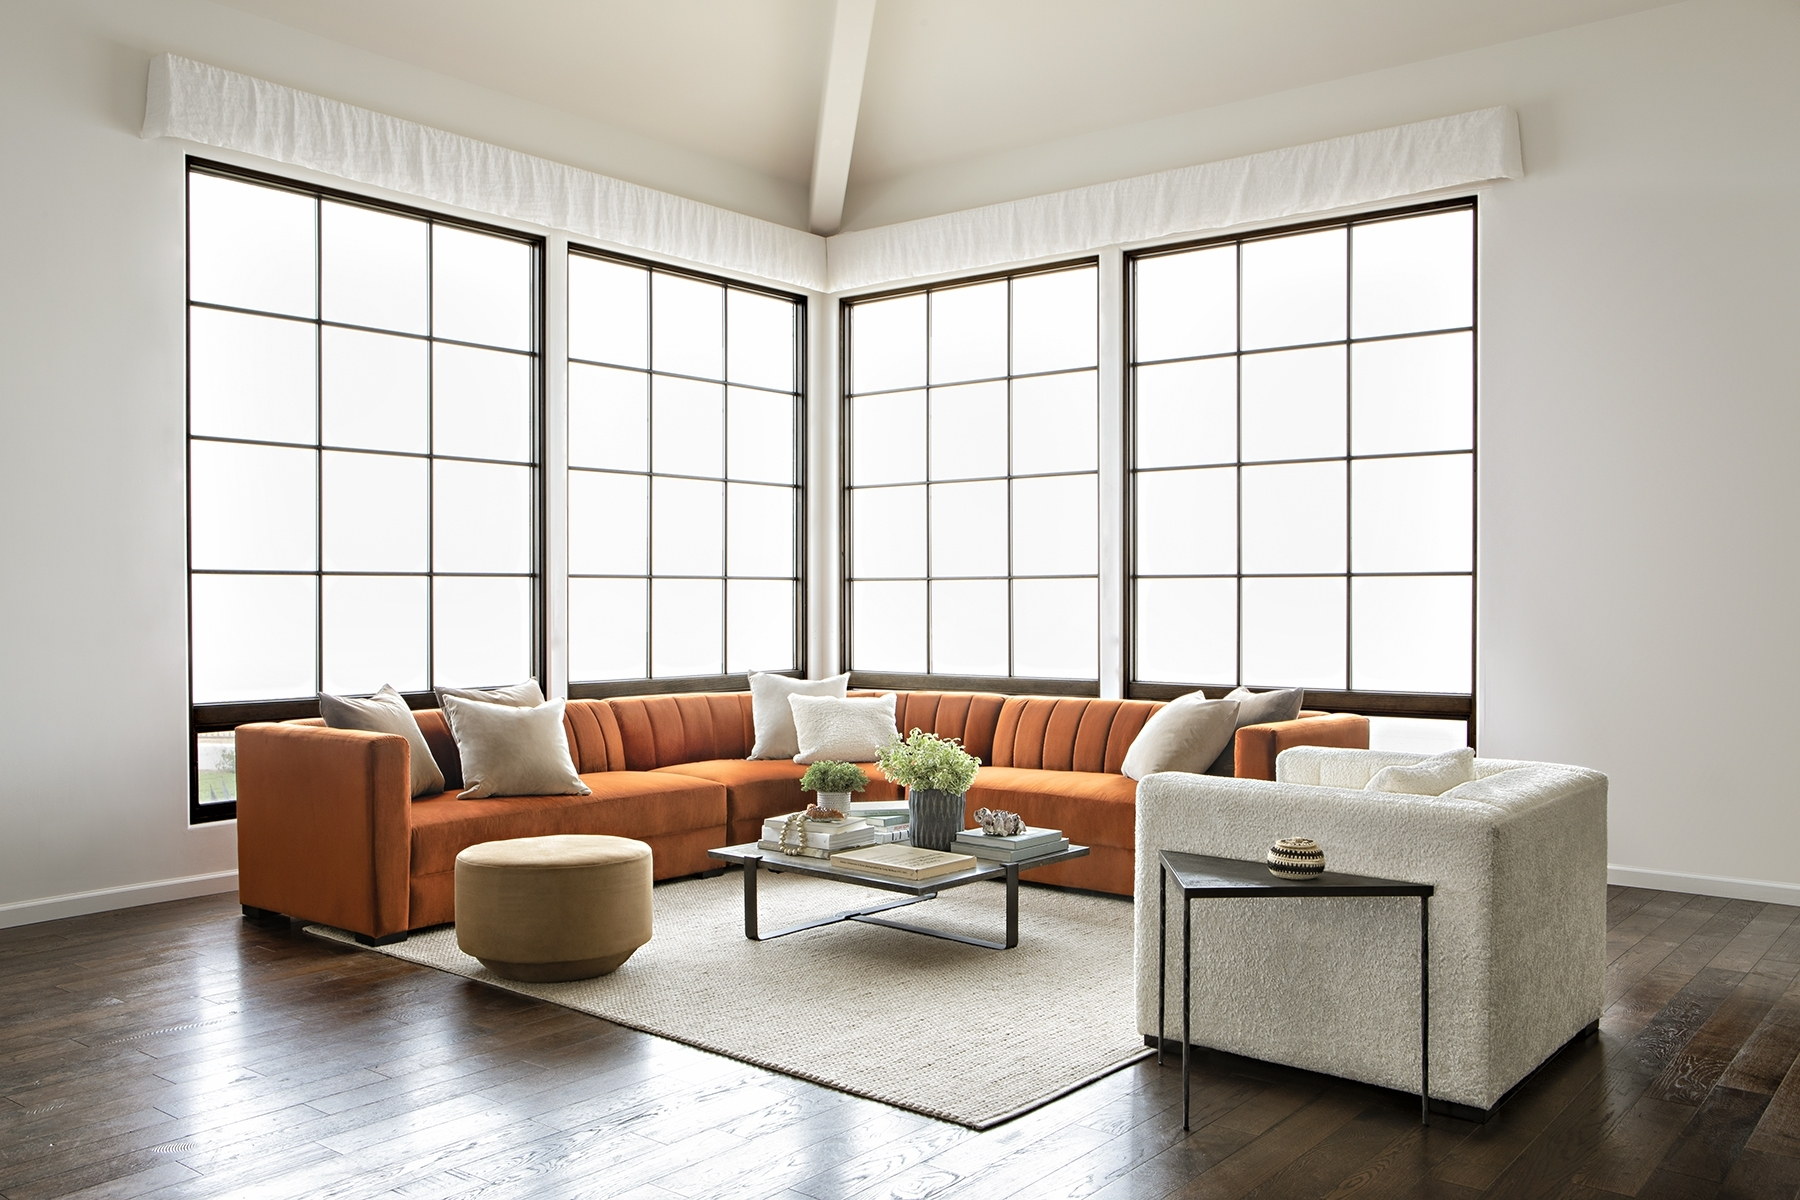 Nate Berkus & Jeremiah Brent's Newest Affordable Collection | Rue Pertaining To Soane 3 Piece Sectionals By Nate Berkus And Jeremiah Brent (View 13 of 25)